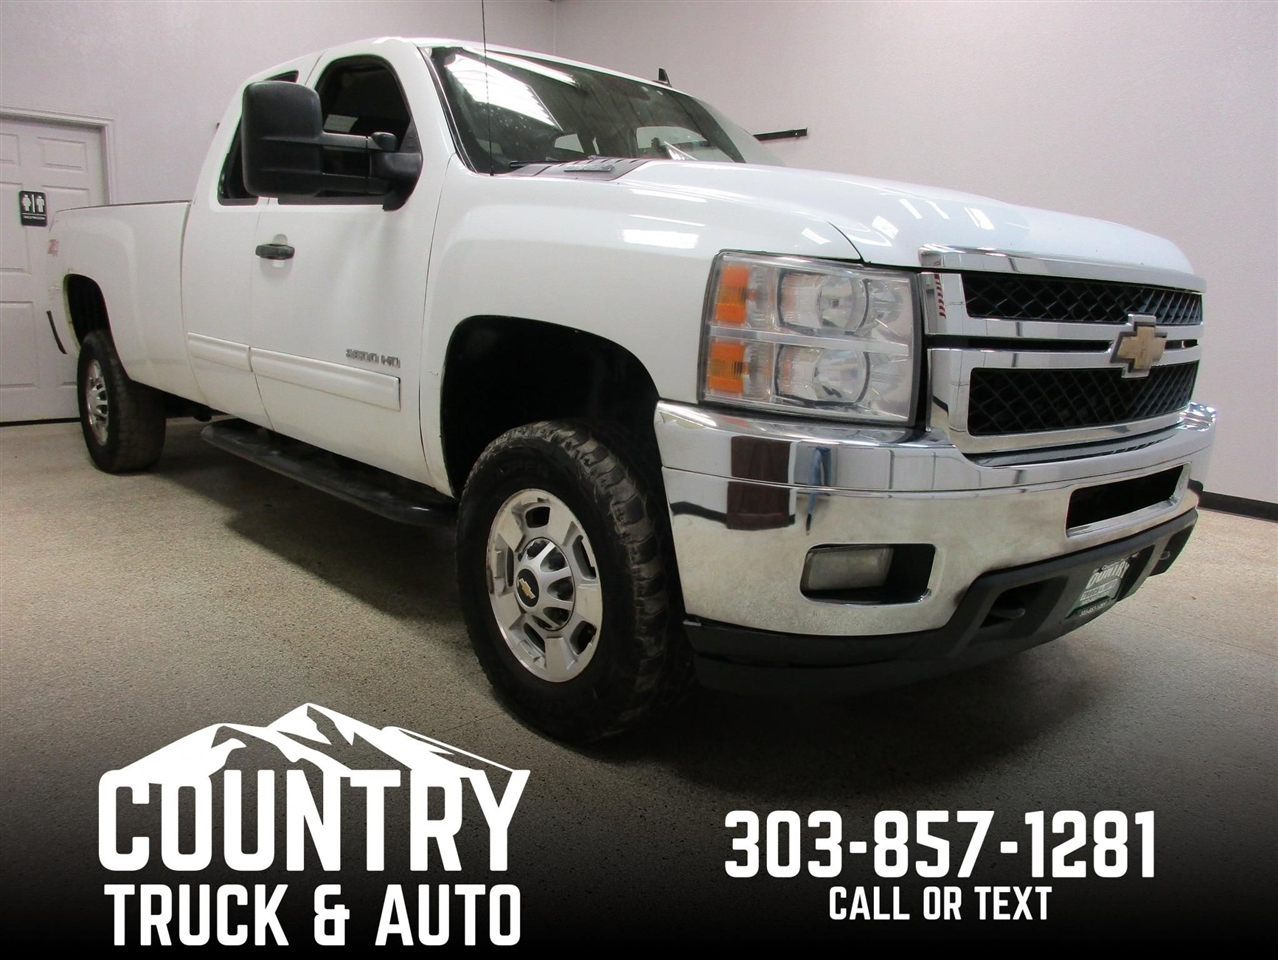 2011 Chevrolet Silverado 2500HD LT Extended Cab Long Bed 4WD